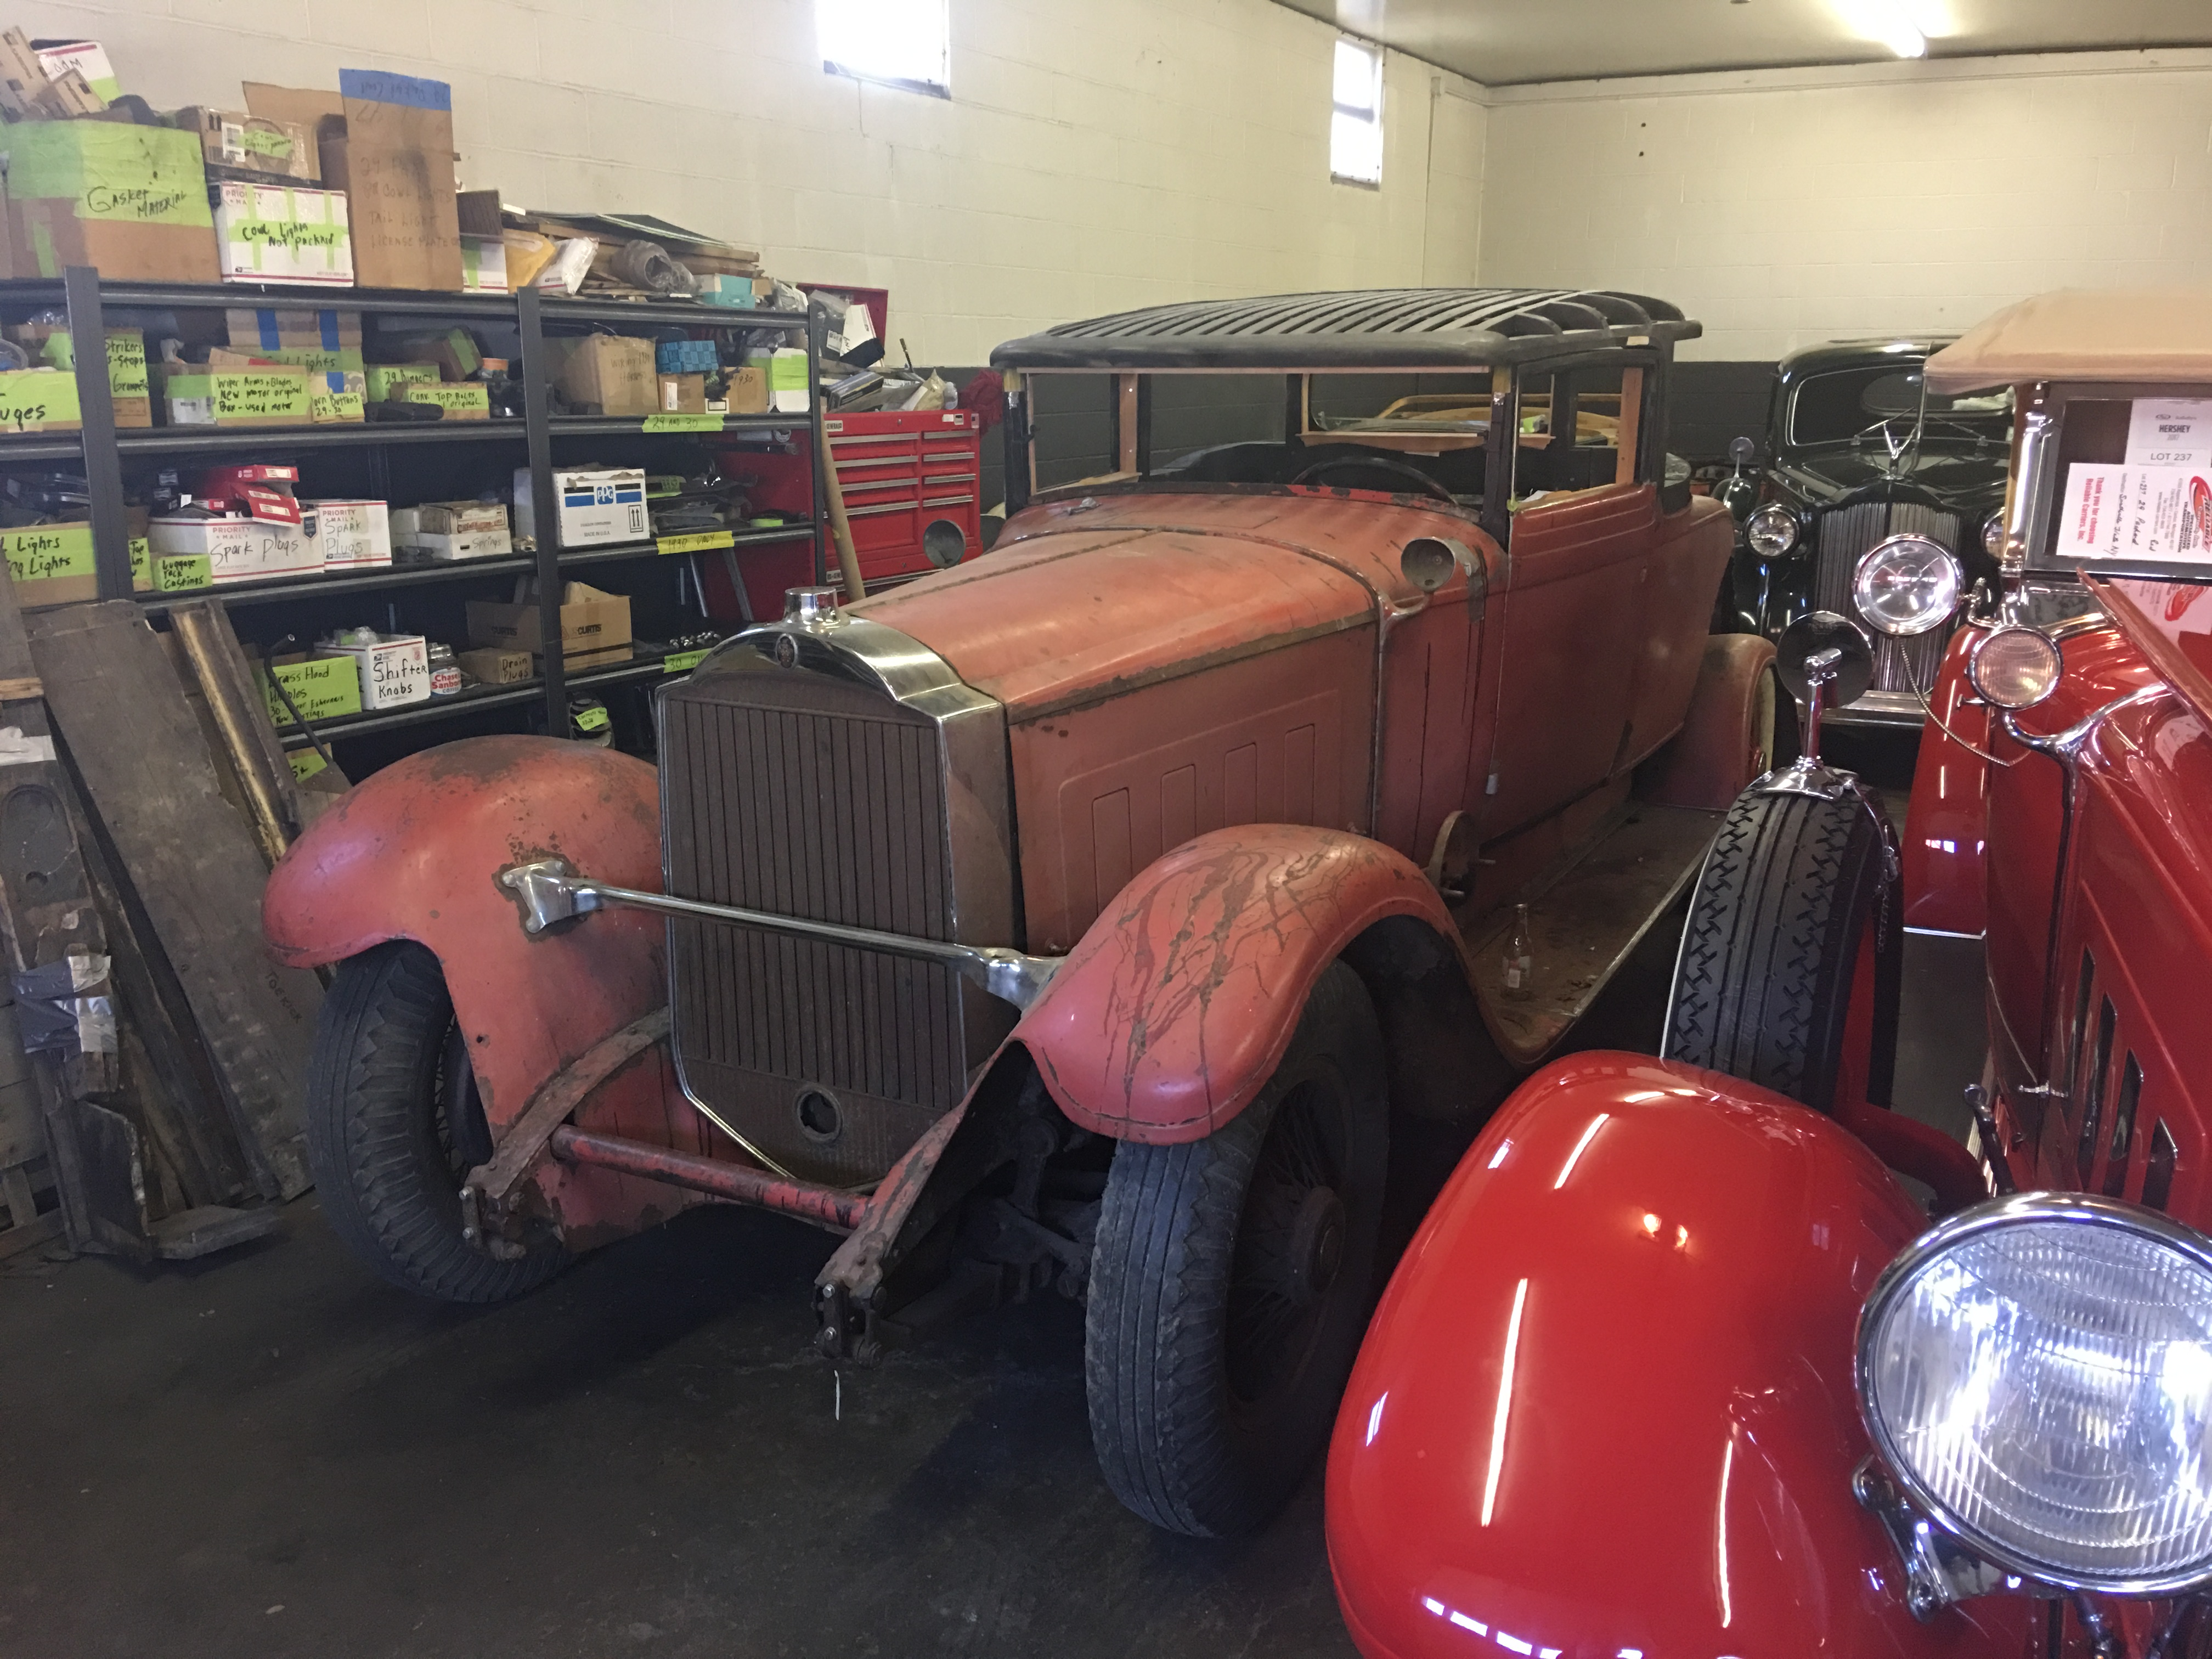 1929 Packard 6-45 Dietrich 2-4 Coupe For Sale - Cars For Sale ...